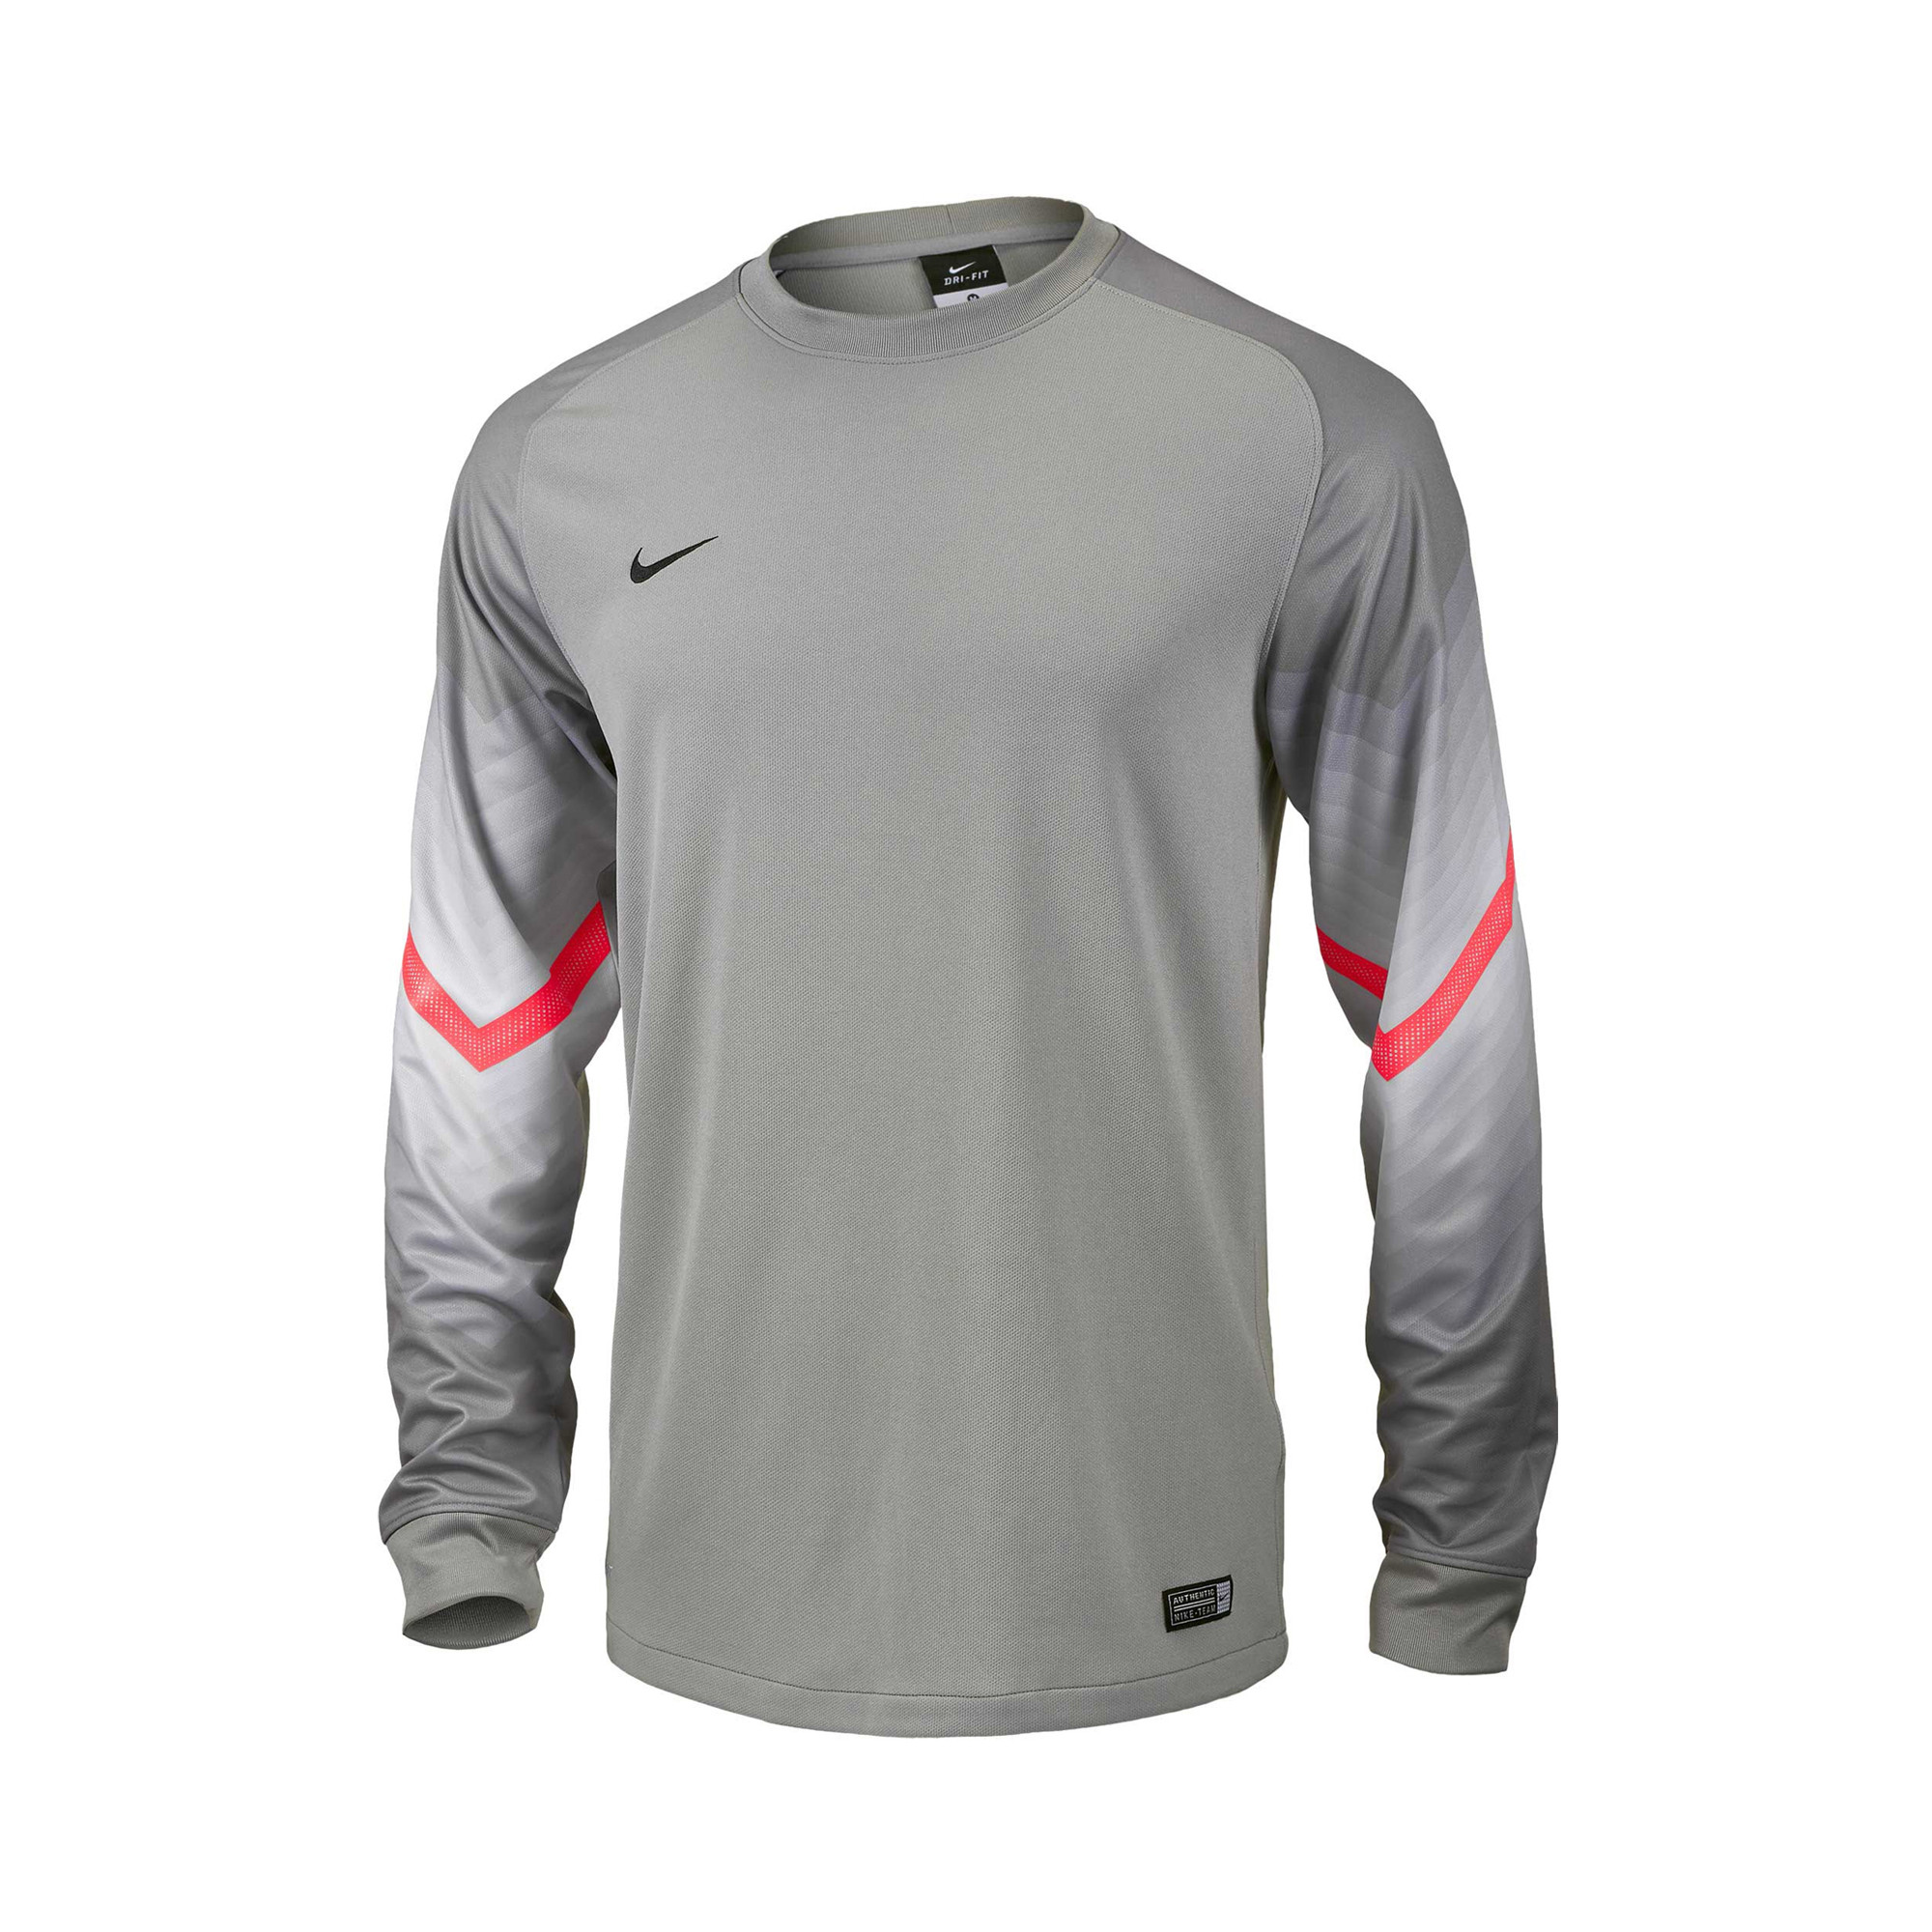 afcc3fc9e Nike Goleiro GK Jersey - Grey | Soccer Unlimited USA